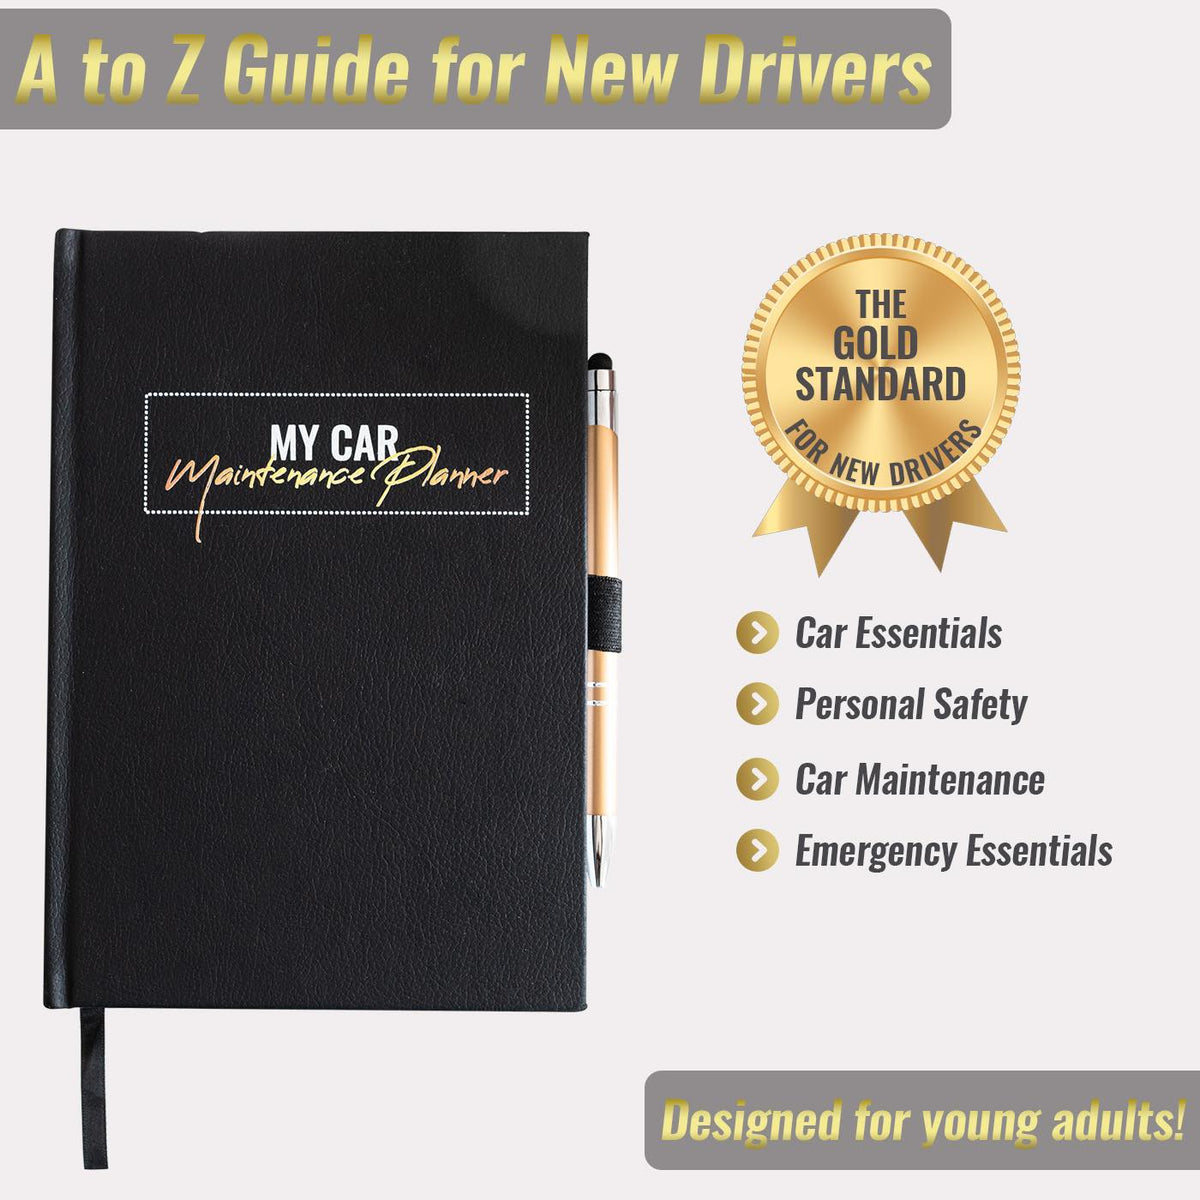 New Drivers Guide Maintenance Planner - Gold